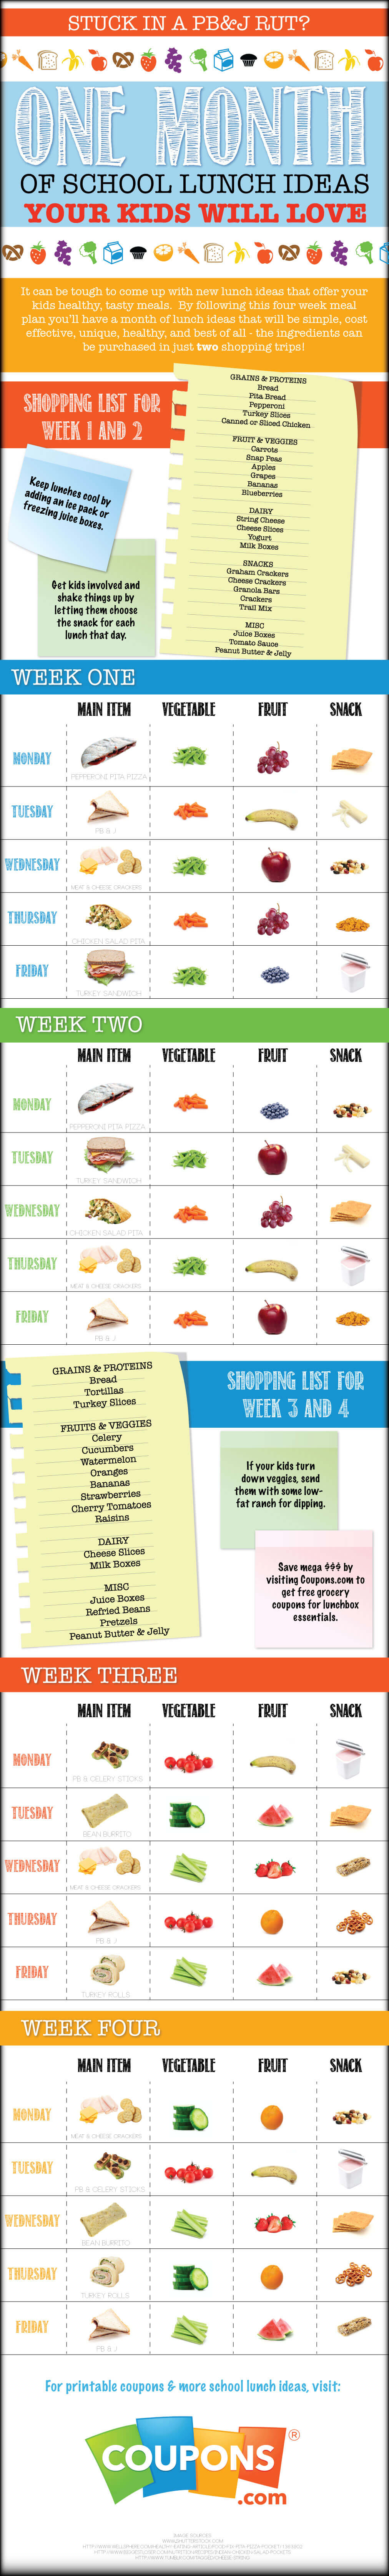 Infographic-School-Lunches-FINAL